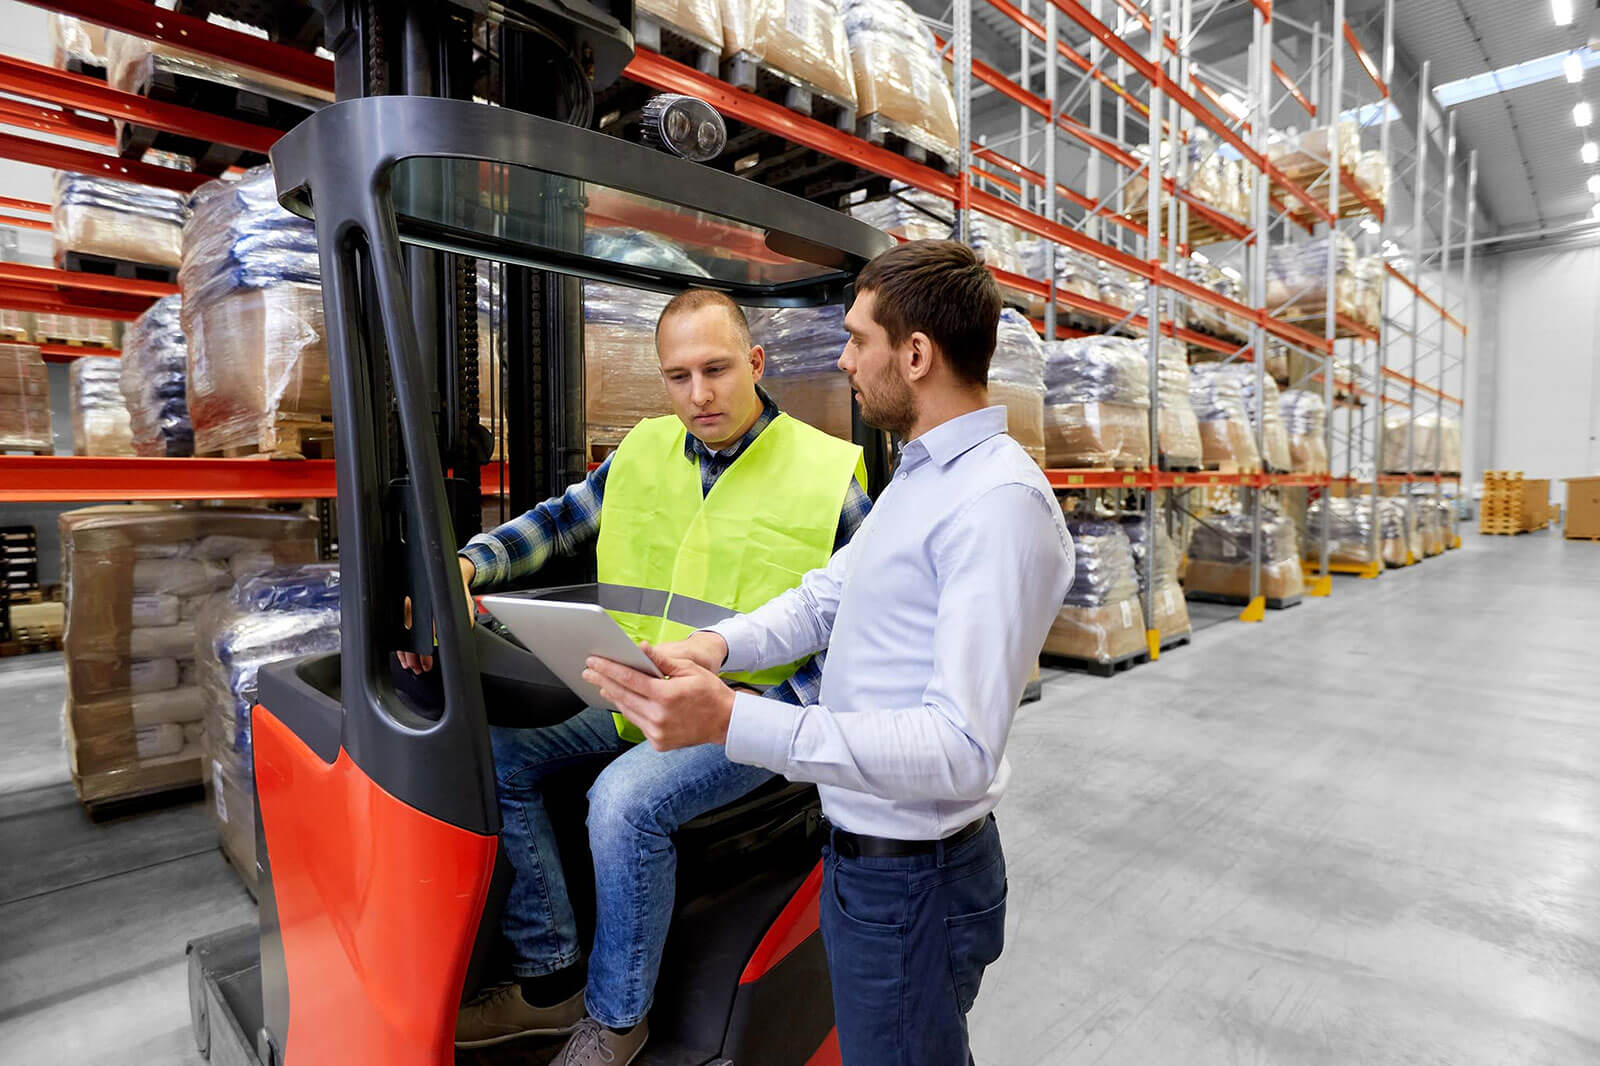 Cargo flow through better supply chain visibility, control.